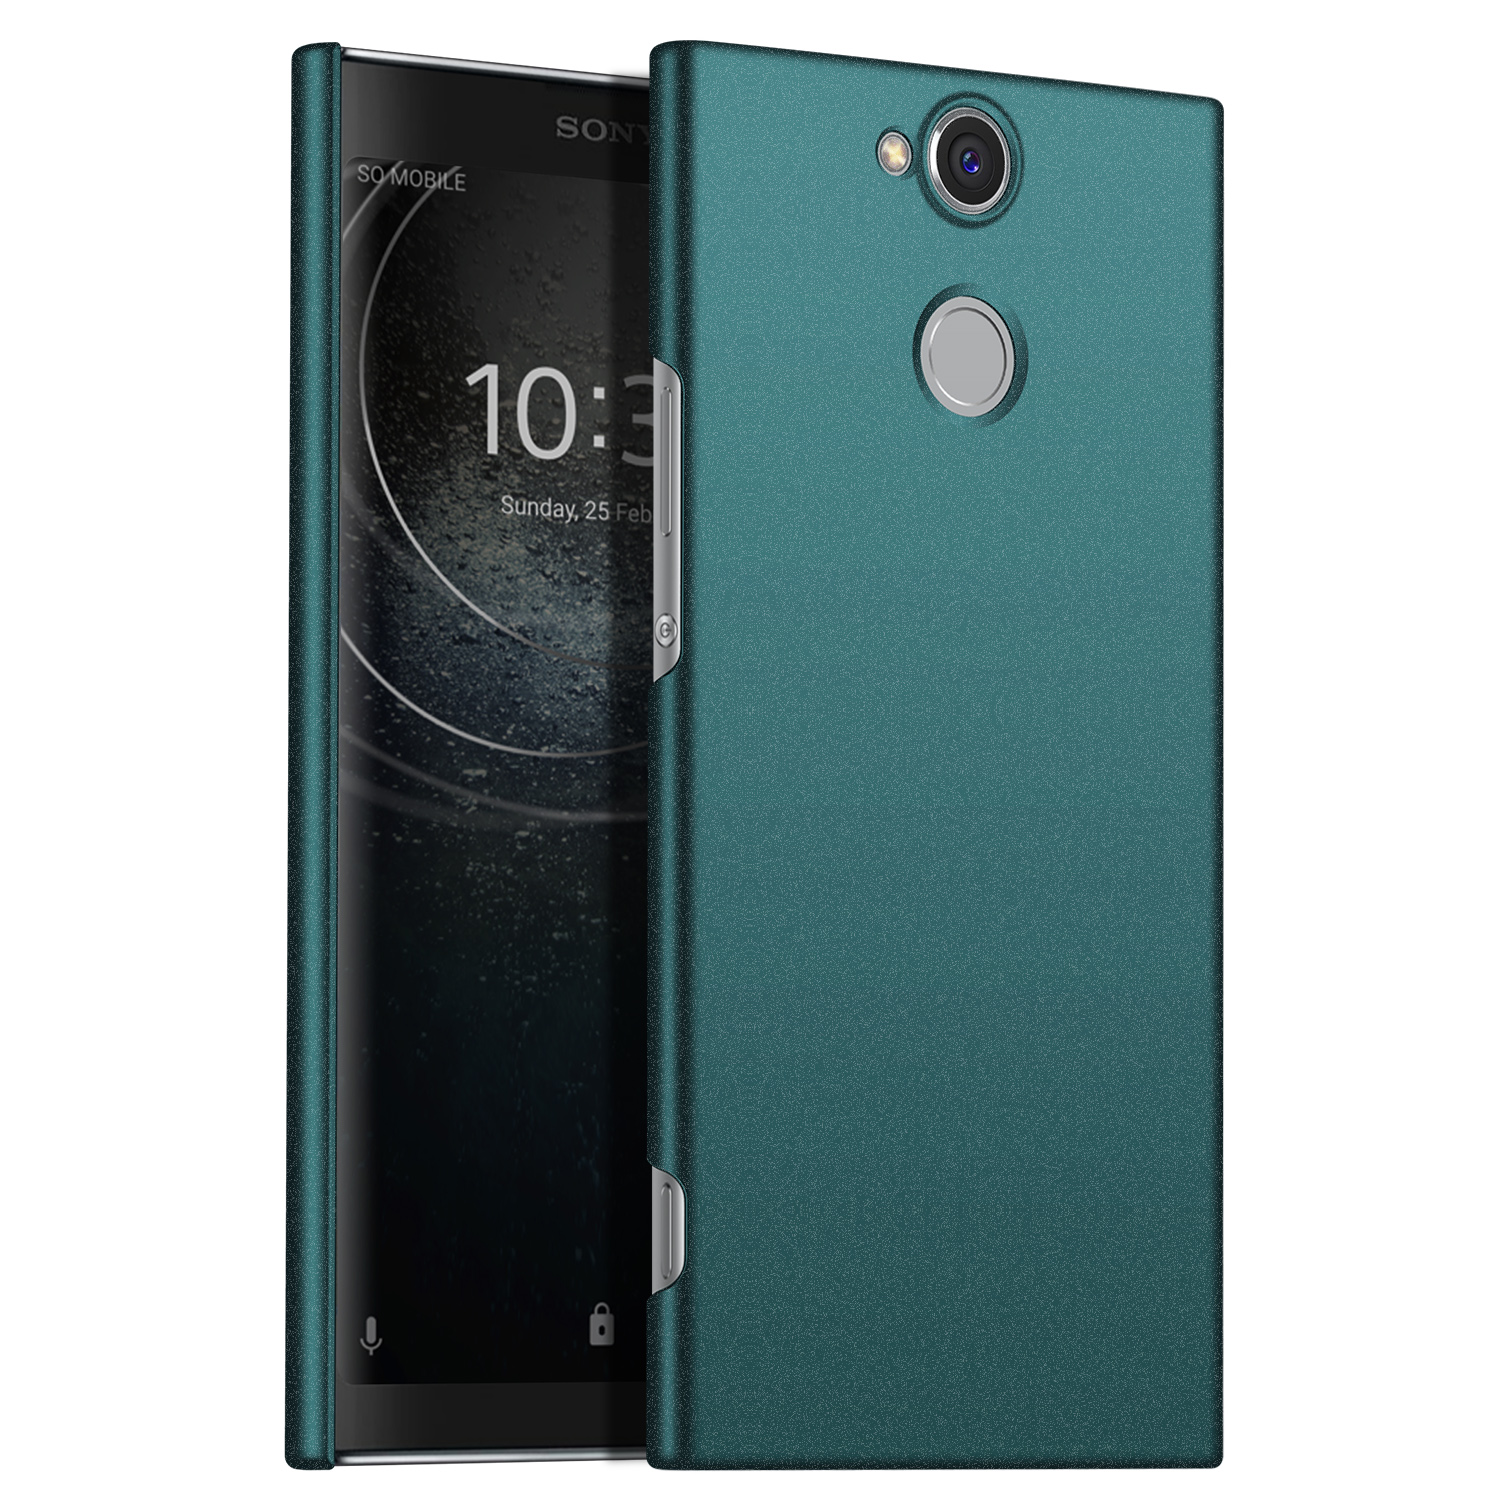 For Sony Xperia XA2 Ultra Case, Ultra-Thin Minimalist Slim Protective Phone Case Back Cover For Sony Xperia XA2For Sony Xperia XA2 Ultra Case, Ultra-Thin Minimalist Slim Protective Phone Case Back Cover For Sony Xperia XA2